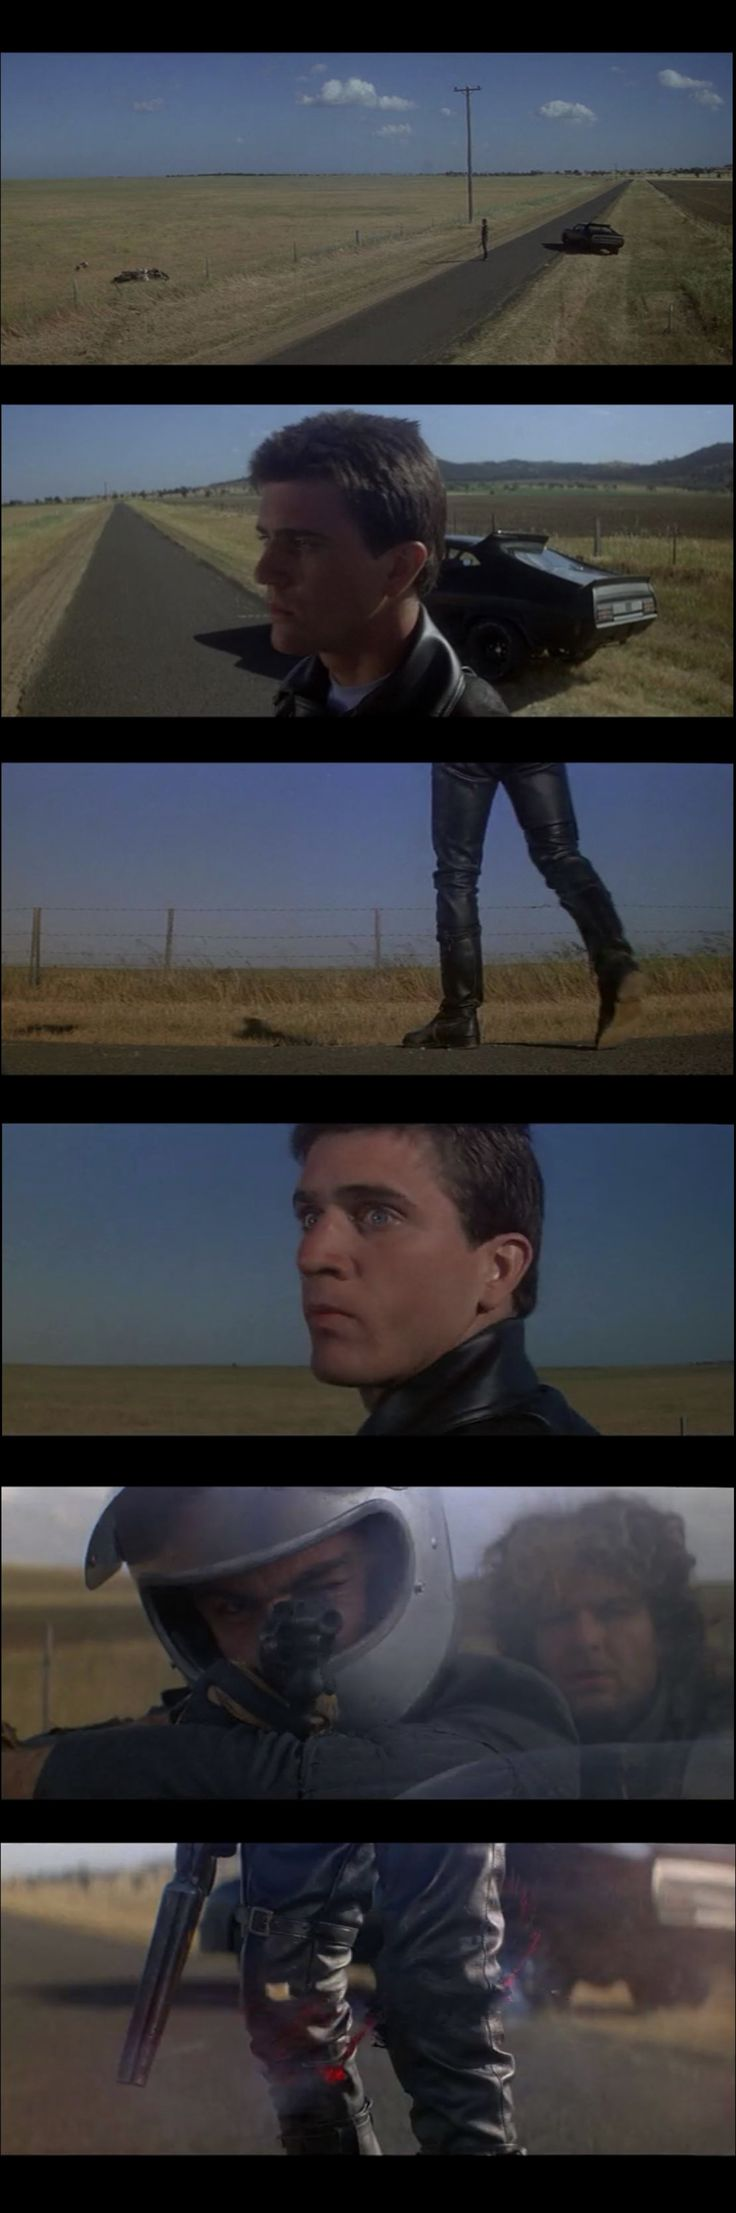 Mad Max (1979) Scene Breakdown #1a:  establishing shot < medium shots < close up #film #filmform #filmmaking